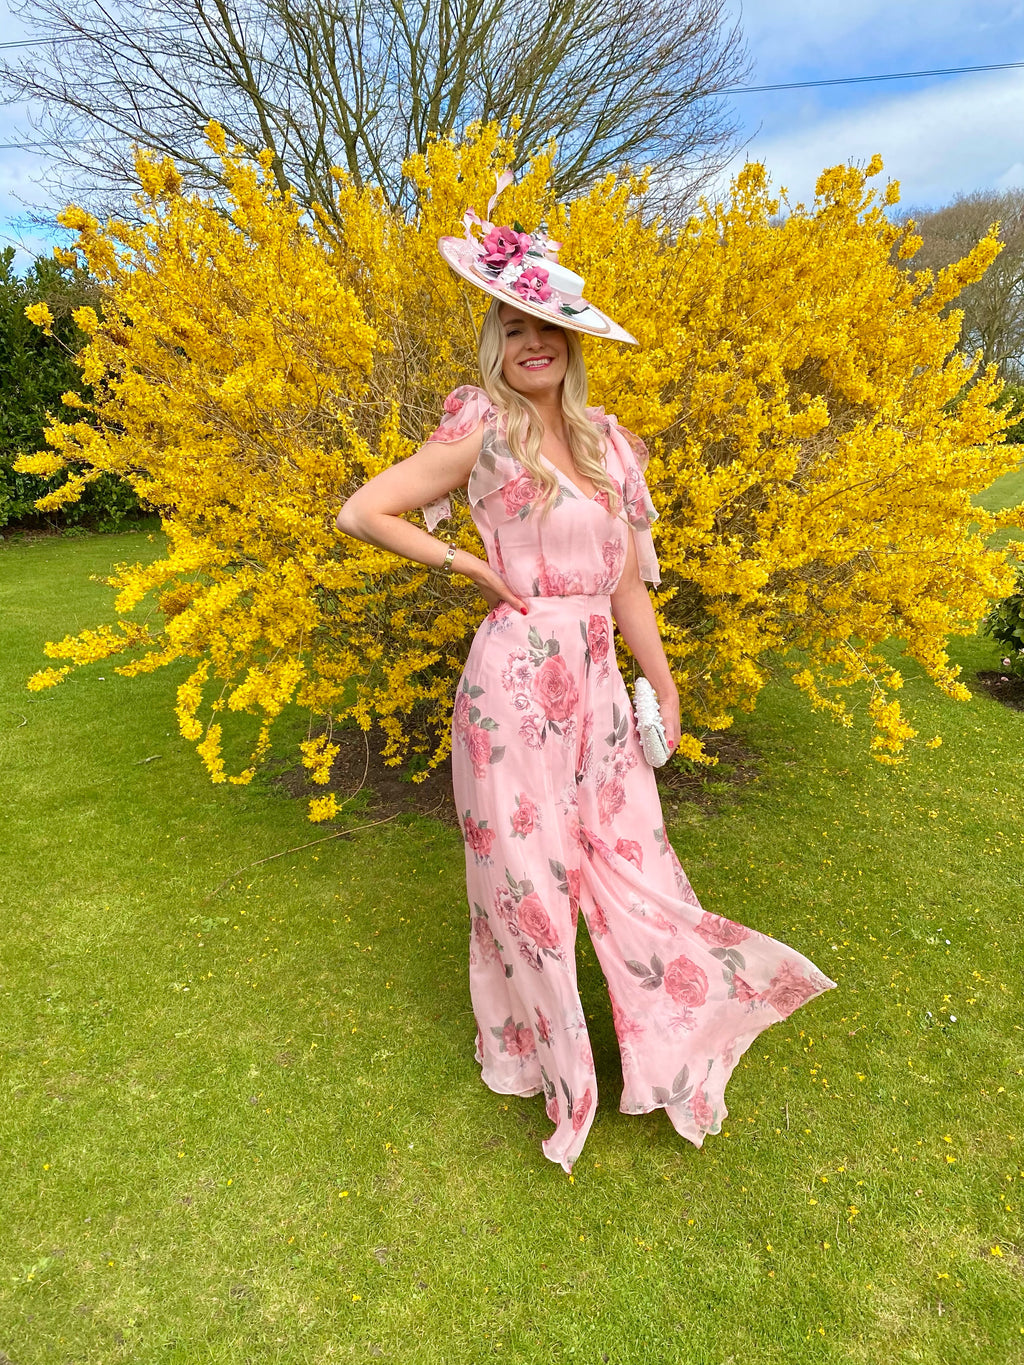 OMG! 1st place Winner at Aintree Virtual Ladies Day 2021